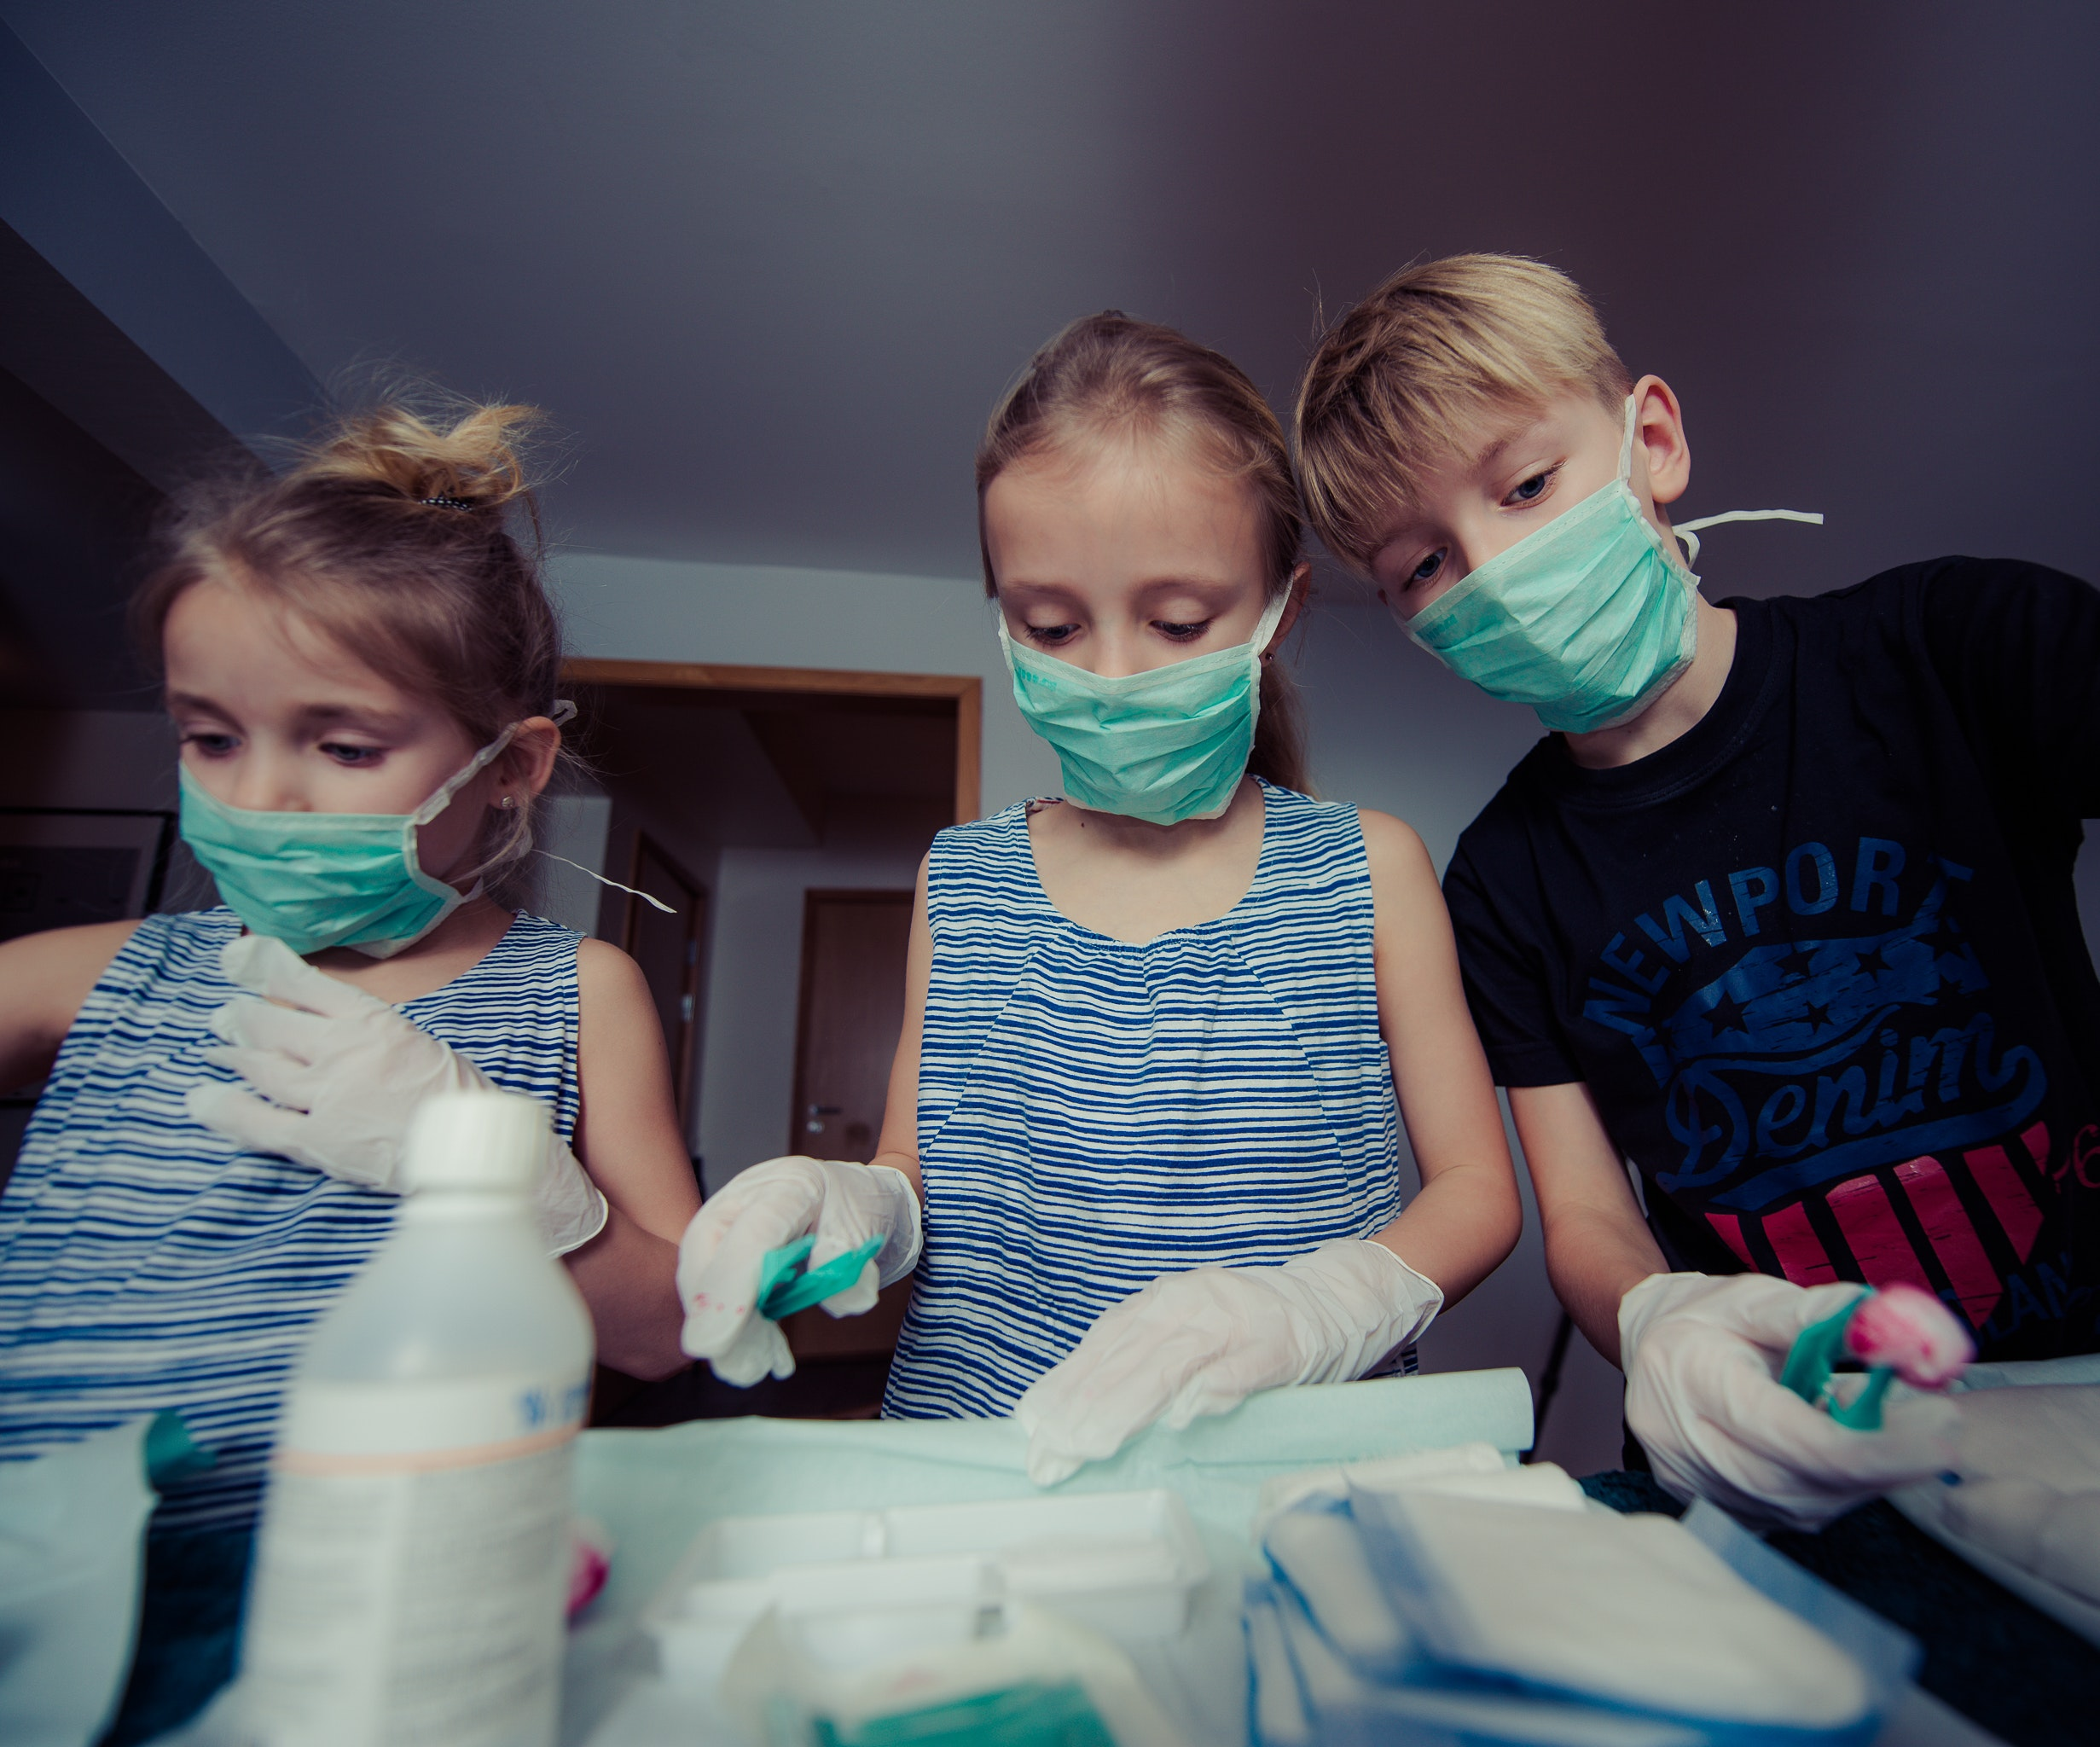 Three Children Wearing Face Masks, People, Kids, Playing, Room, HQ Photo